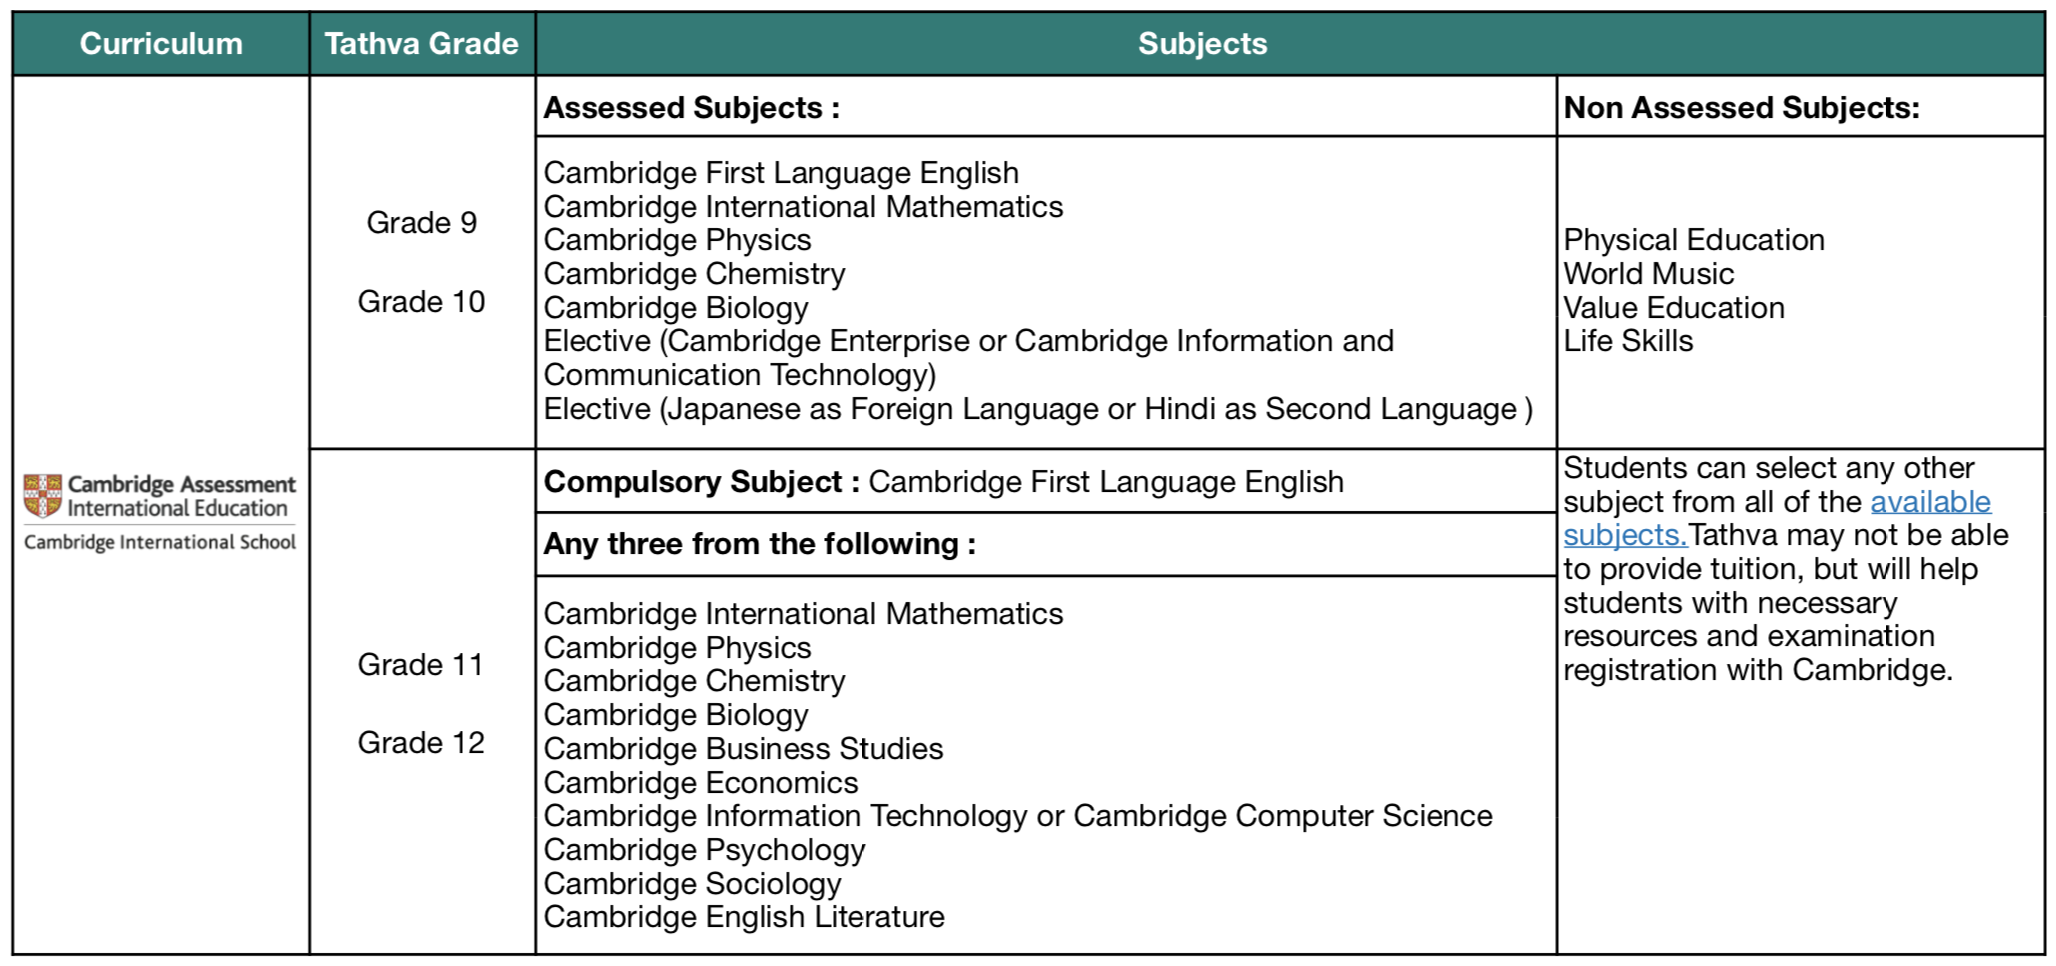 Cambridge Assessment International Education (CAIE) - for